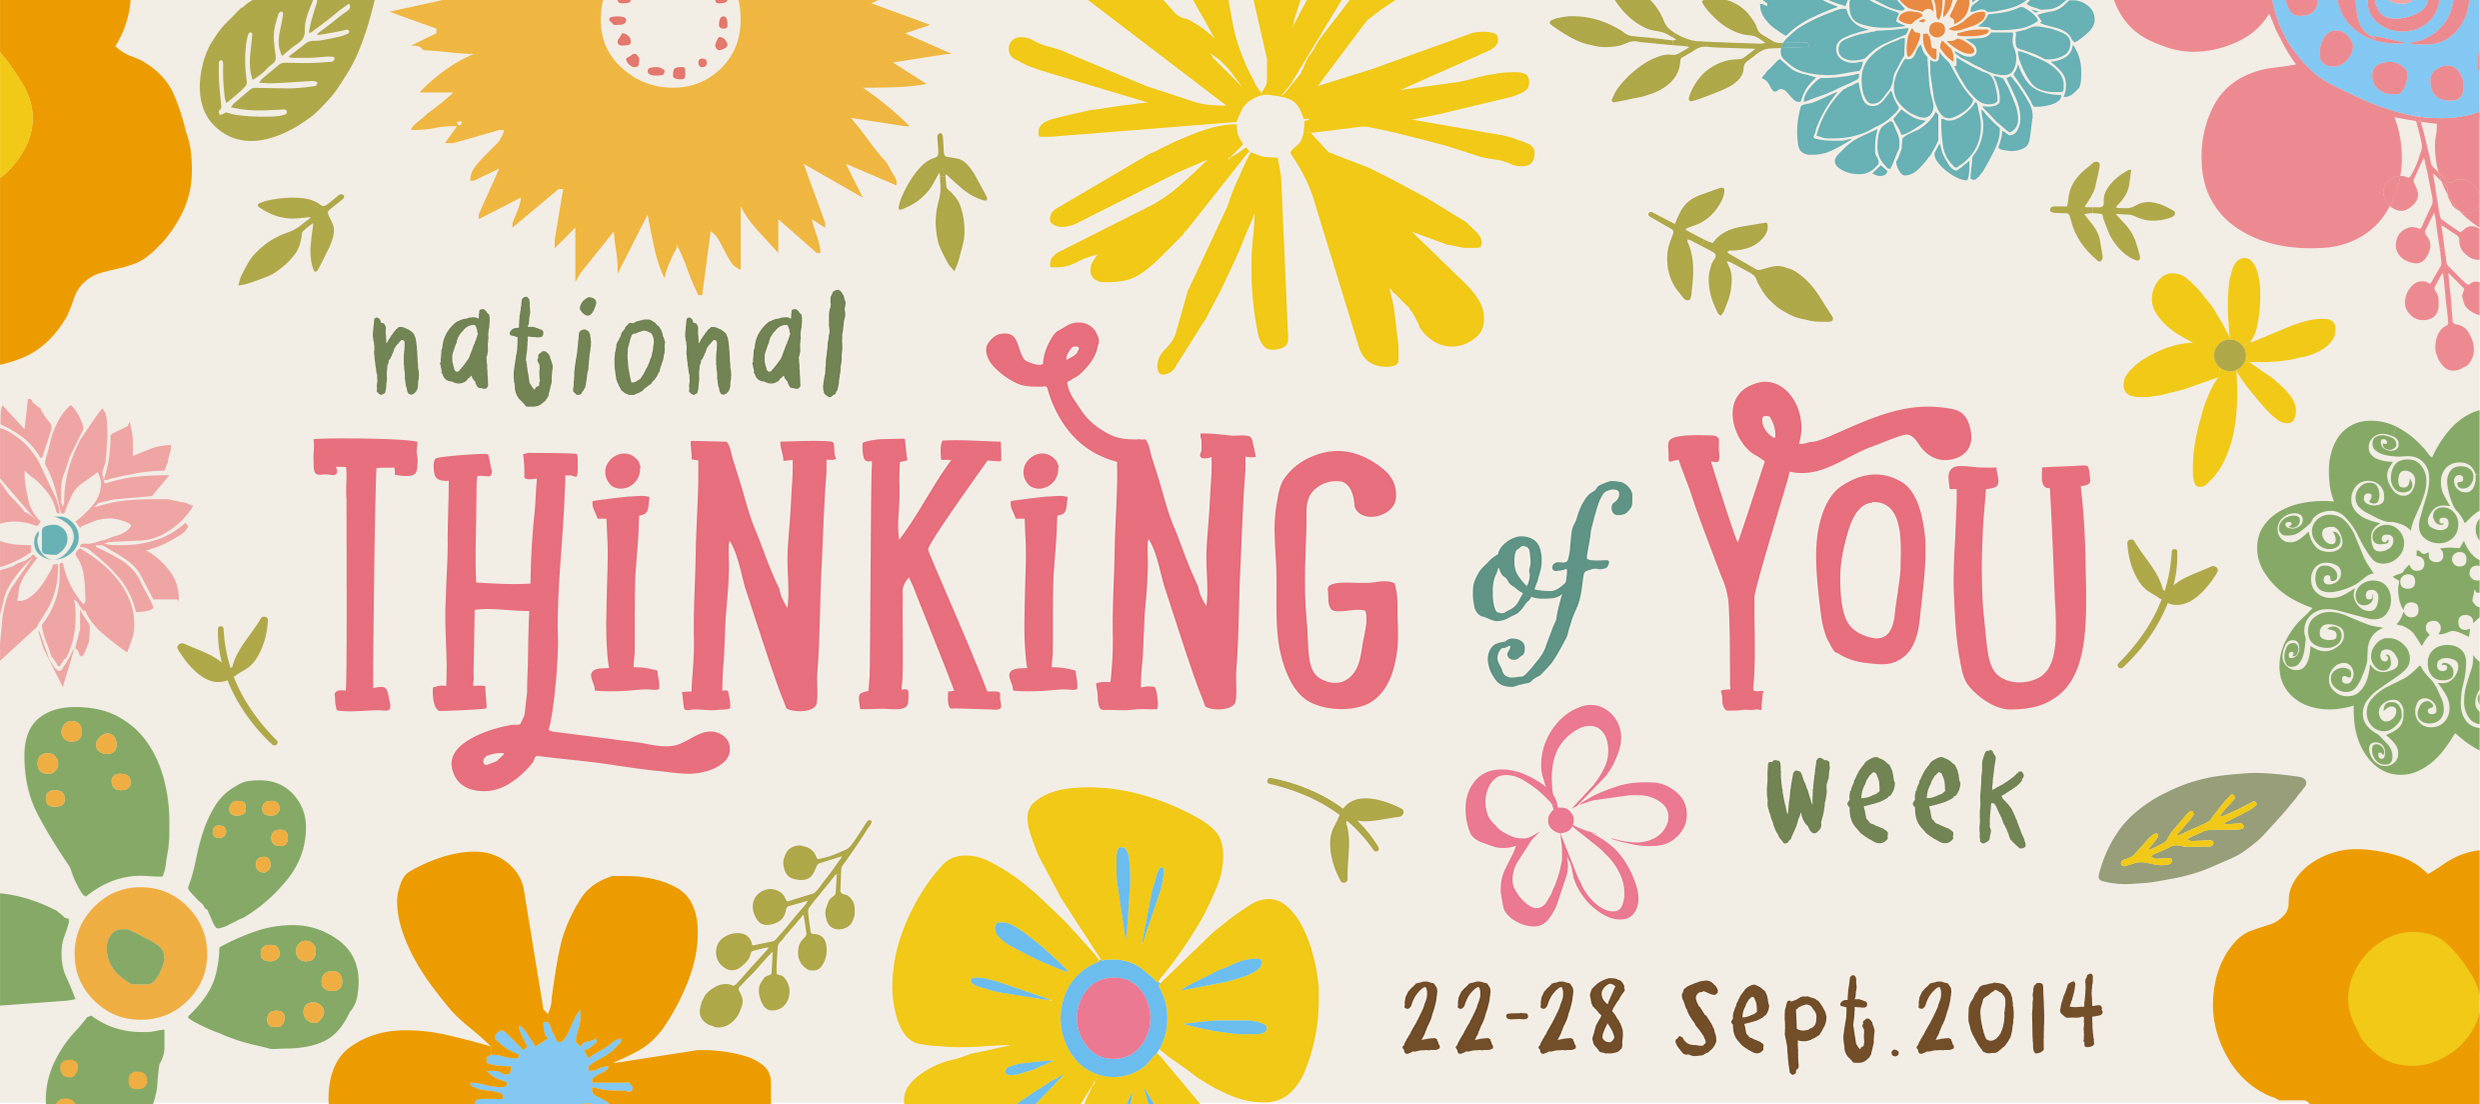 National Thinking Of You Week Sept 22nd Til 28th